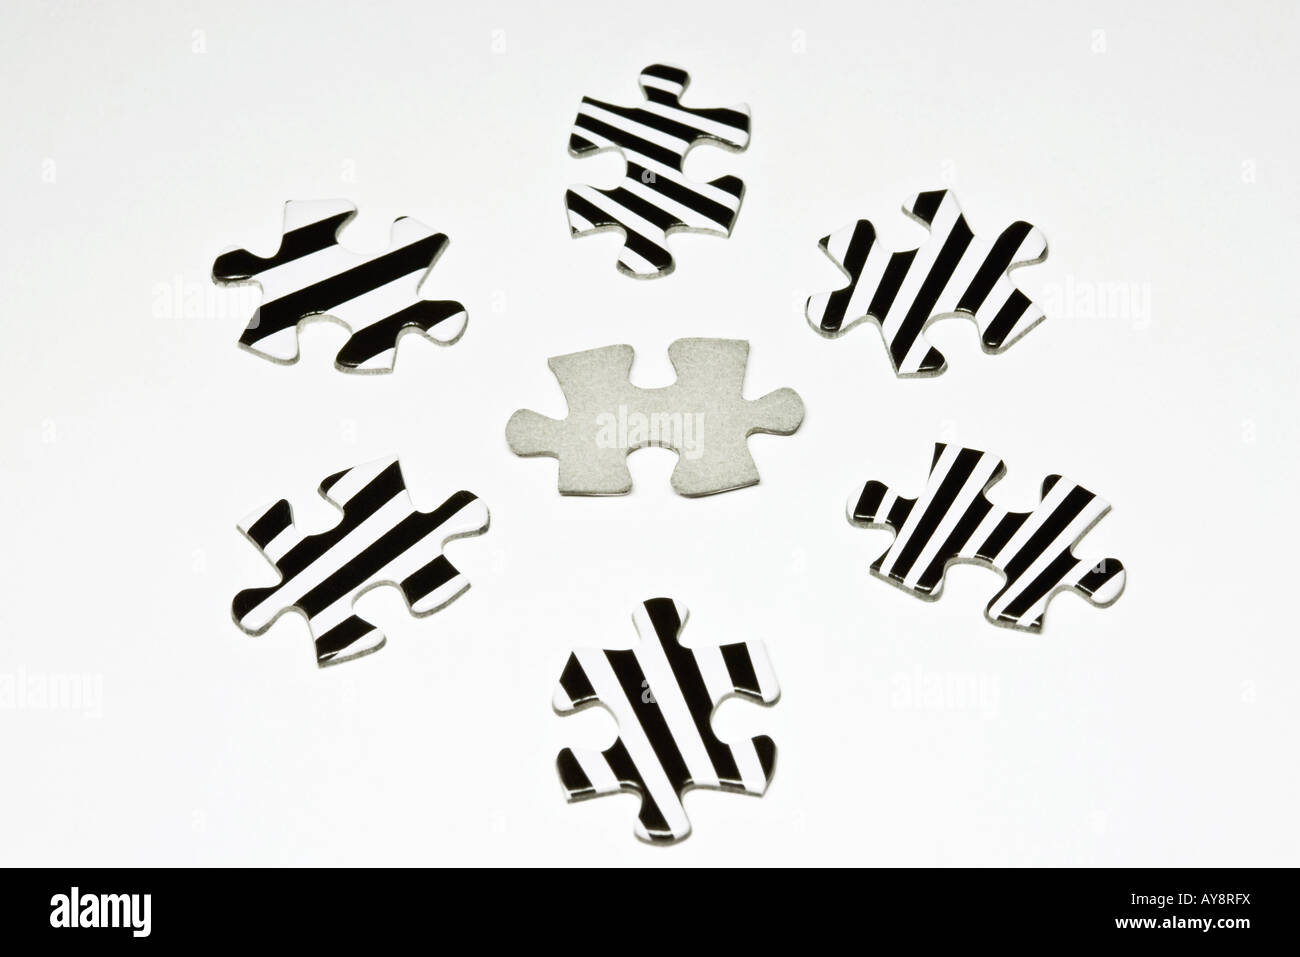 Jigsaw puzzle pieces, close-up - Stock Image